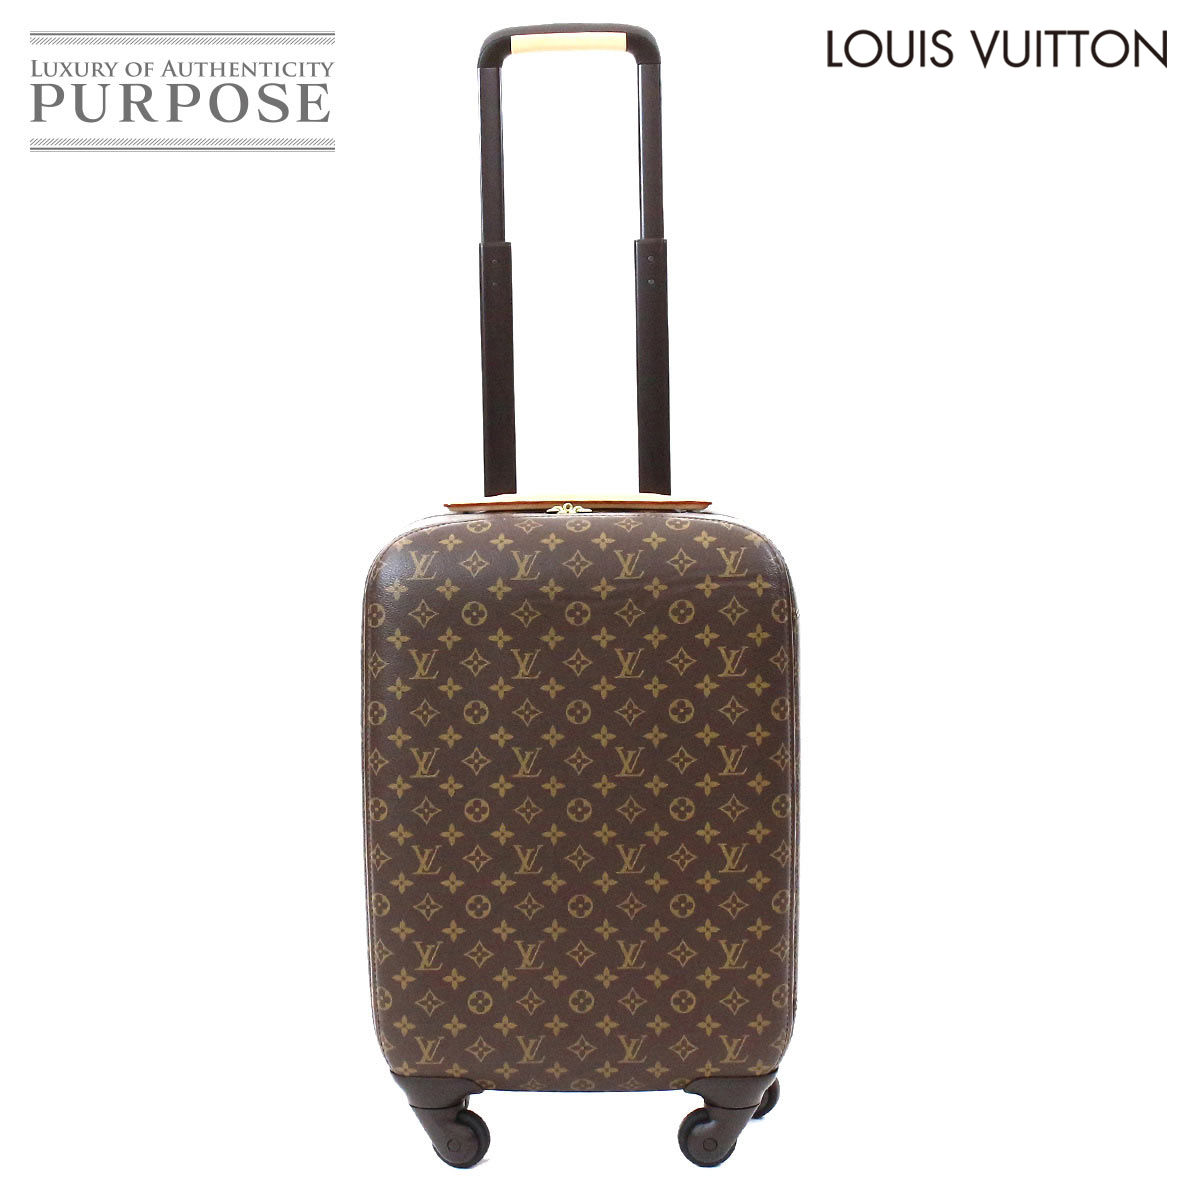 219666378c51 Louis Vuitton LOUIS VUITTON モノグラムゼフィール 55 carrier bag suitcase brown M23030   used  brand